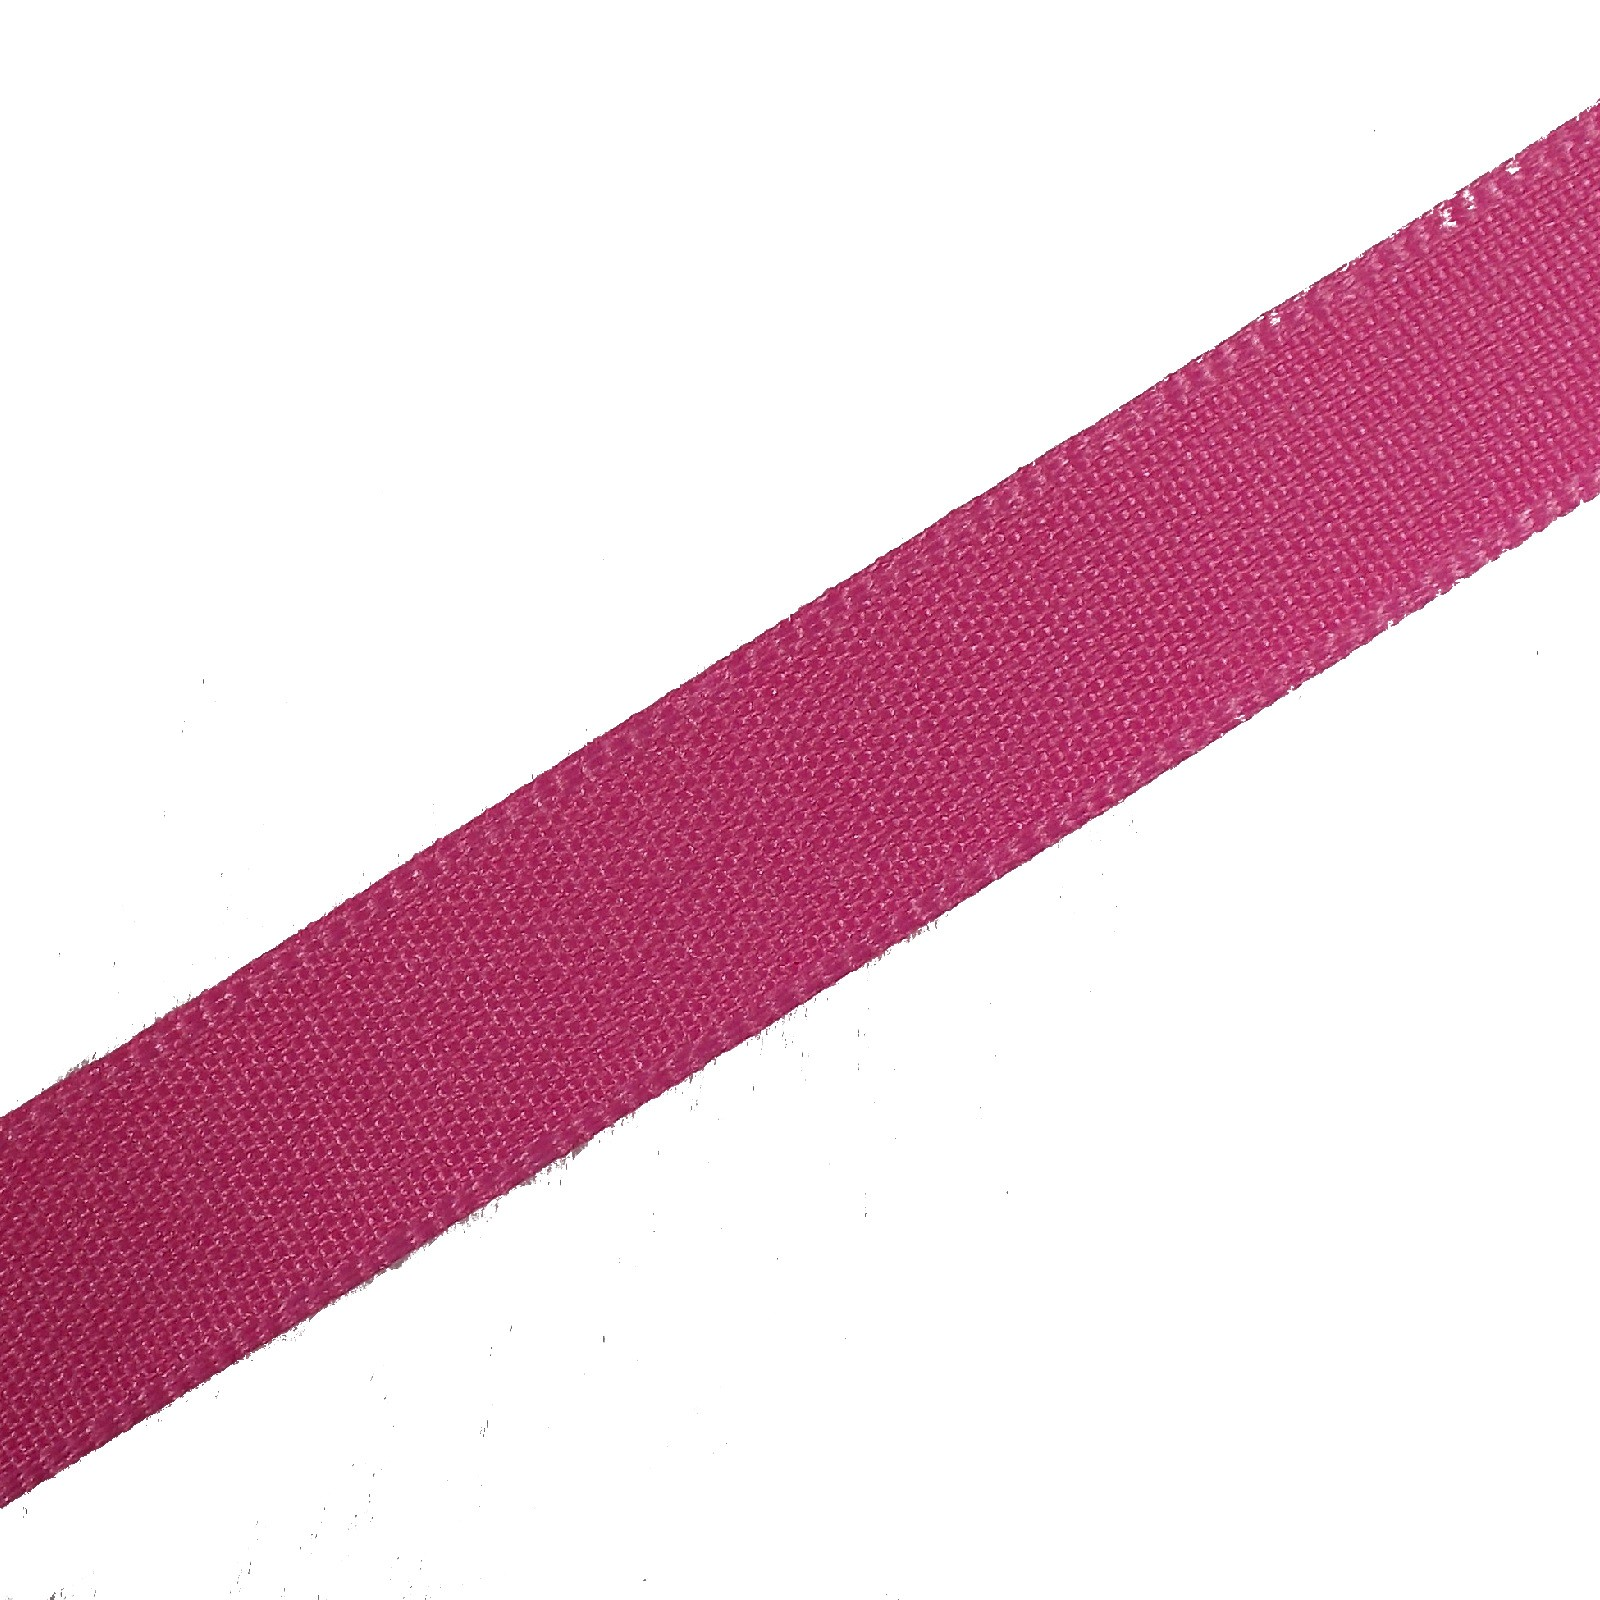 Berisfords Seam Binding Polyester Ribbon Tape 12mm wide Hot Pink 3 metre length